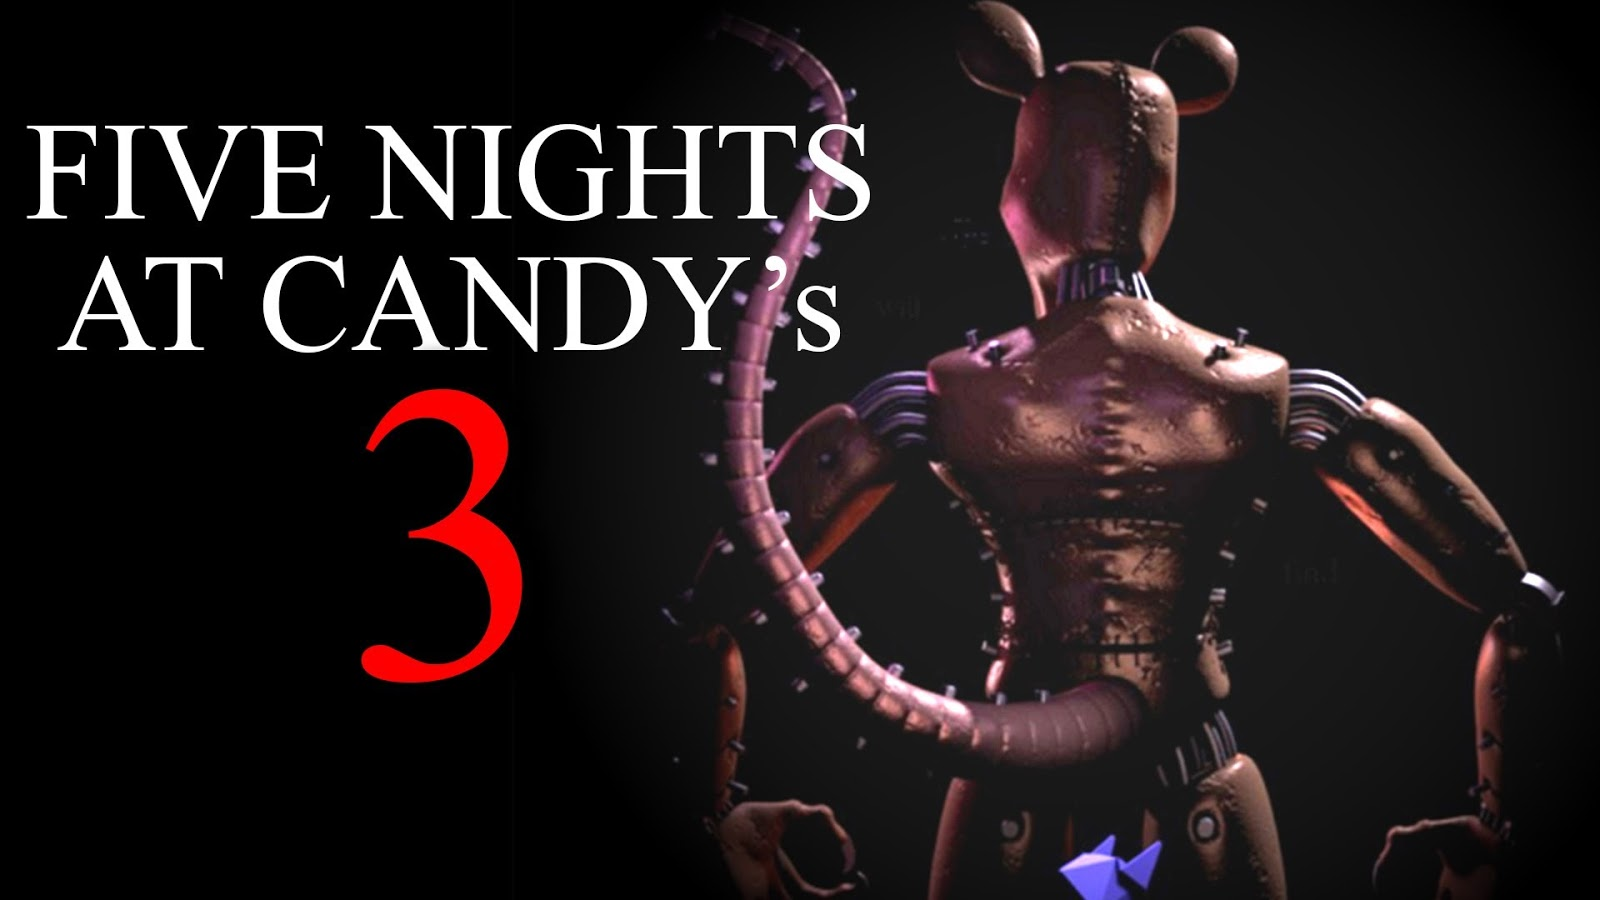 Five nights at-candy's 3